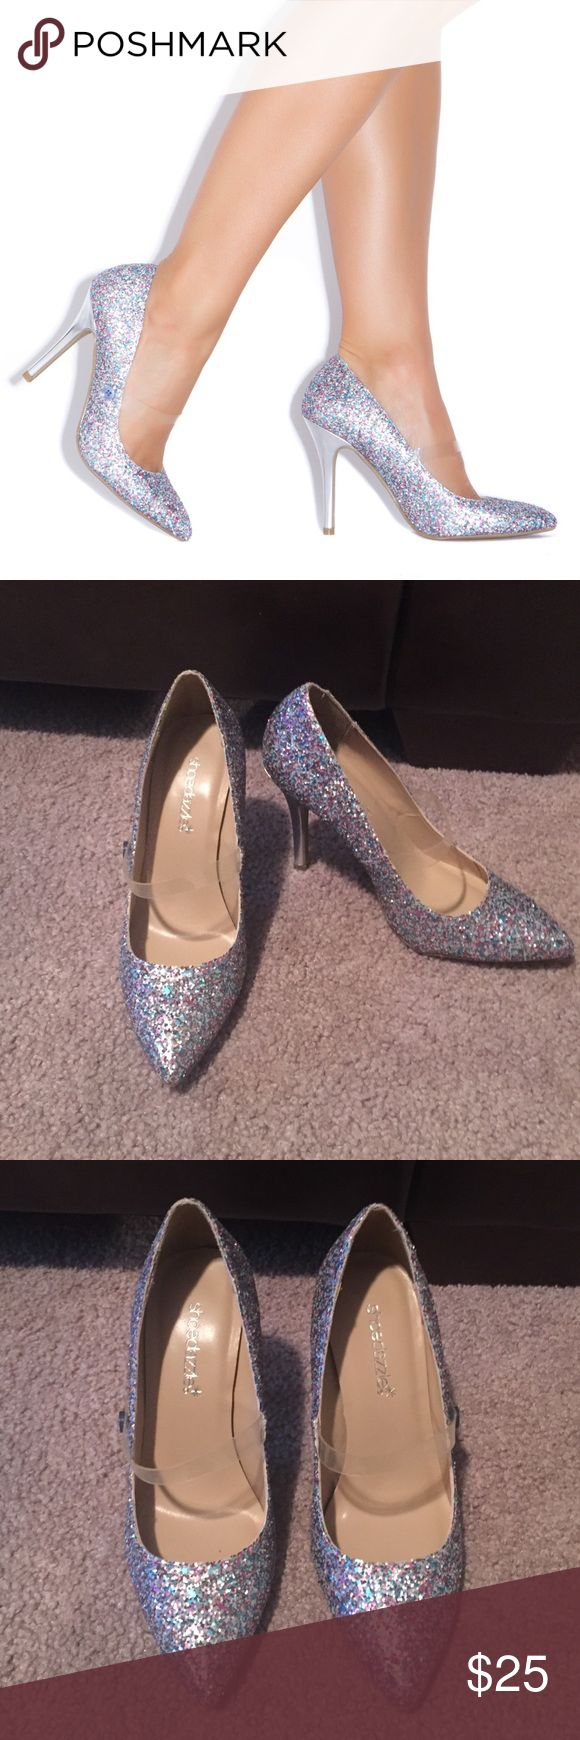 Shoedazzle Magic pumps Cute glittery pumps. Have a transparent strap and heel is silver color. NEW never worn. Shoe Dazzle Shoes Heels